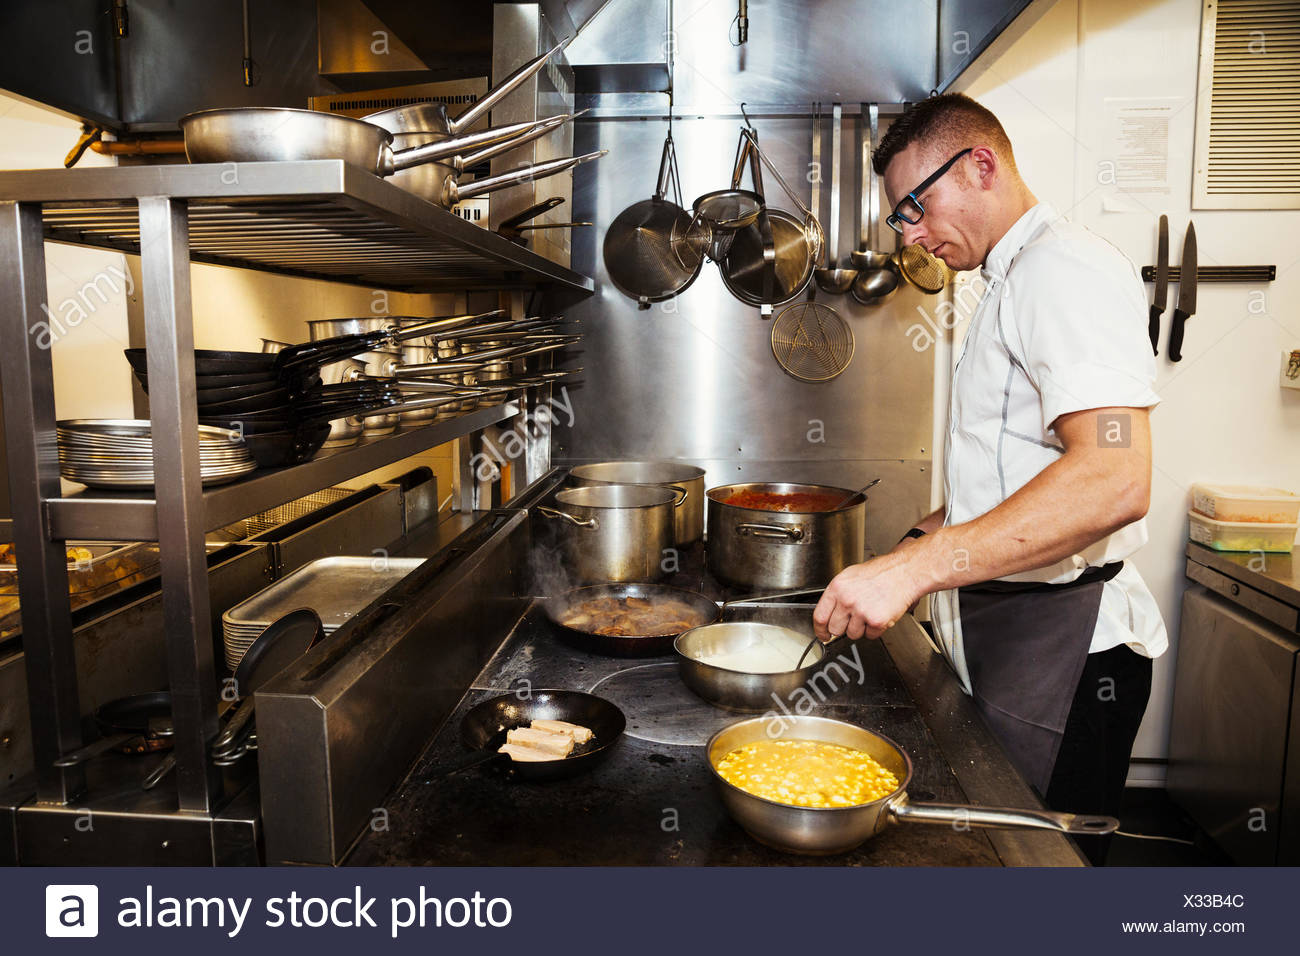 Chef cooking in a restaurant kitchen. - Stock Image